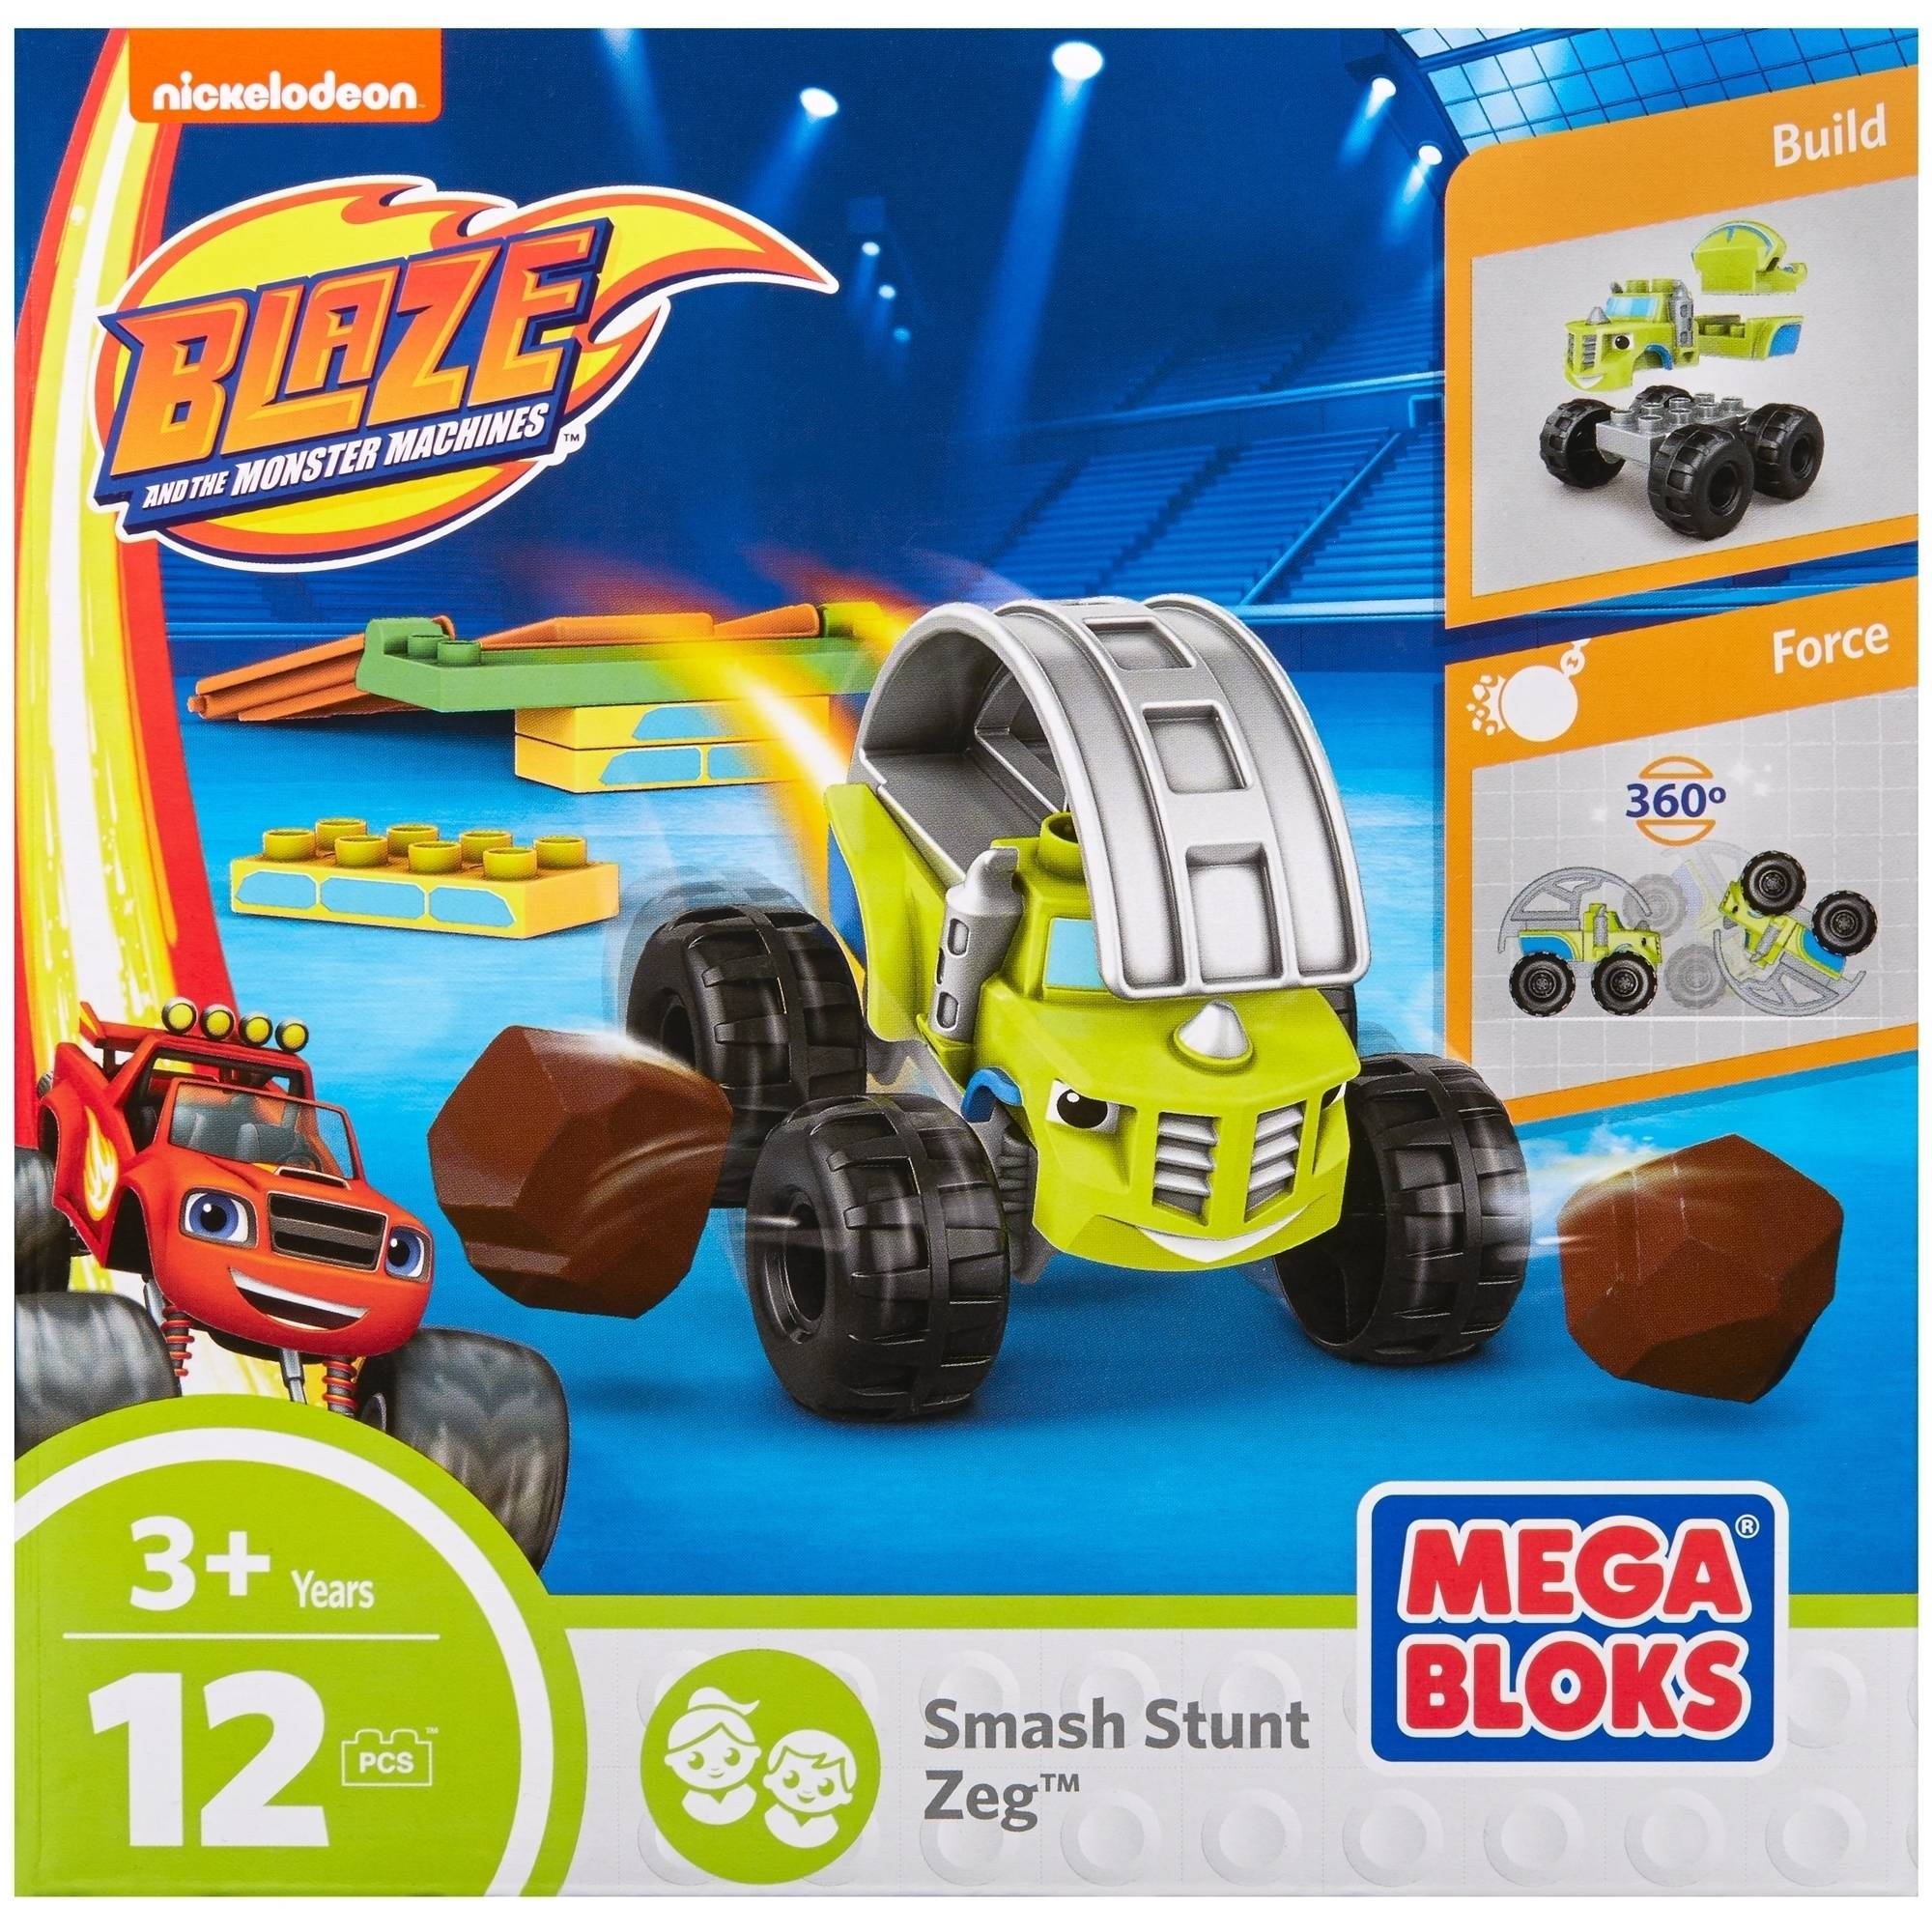 Mega Bloks Nickelodeon Blaze and the Monster Machines Smash Stunt Zeg